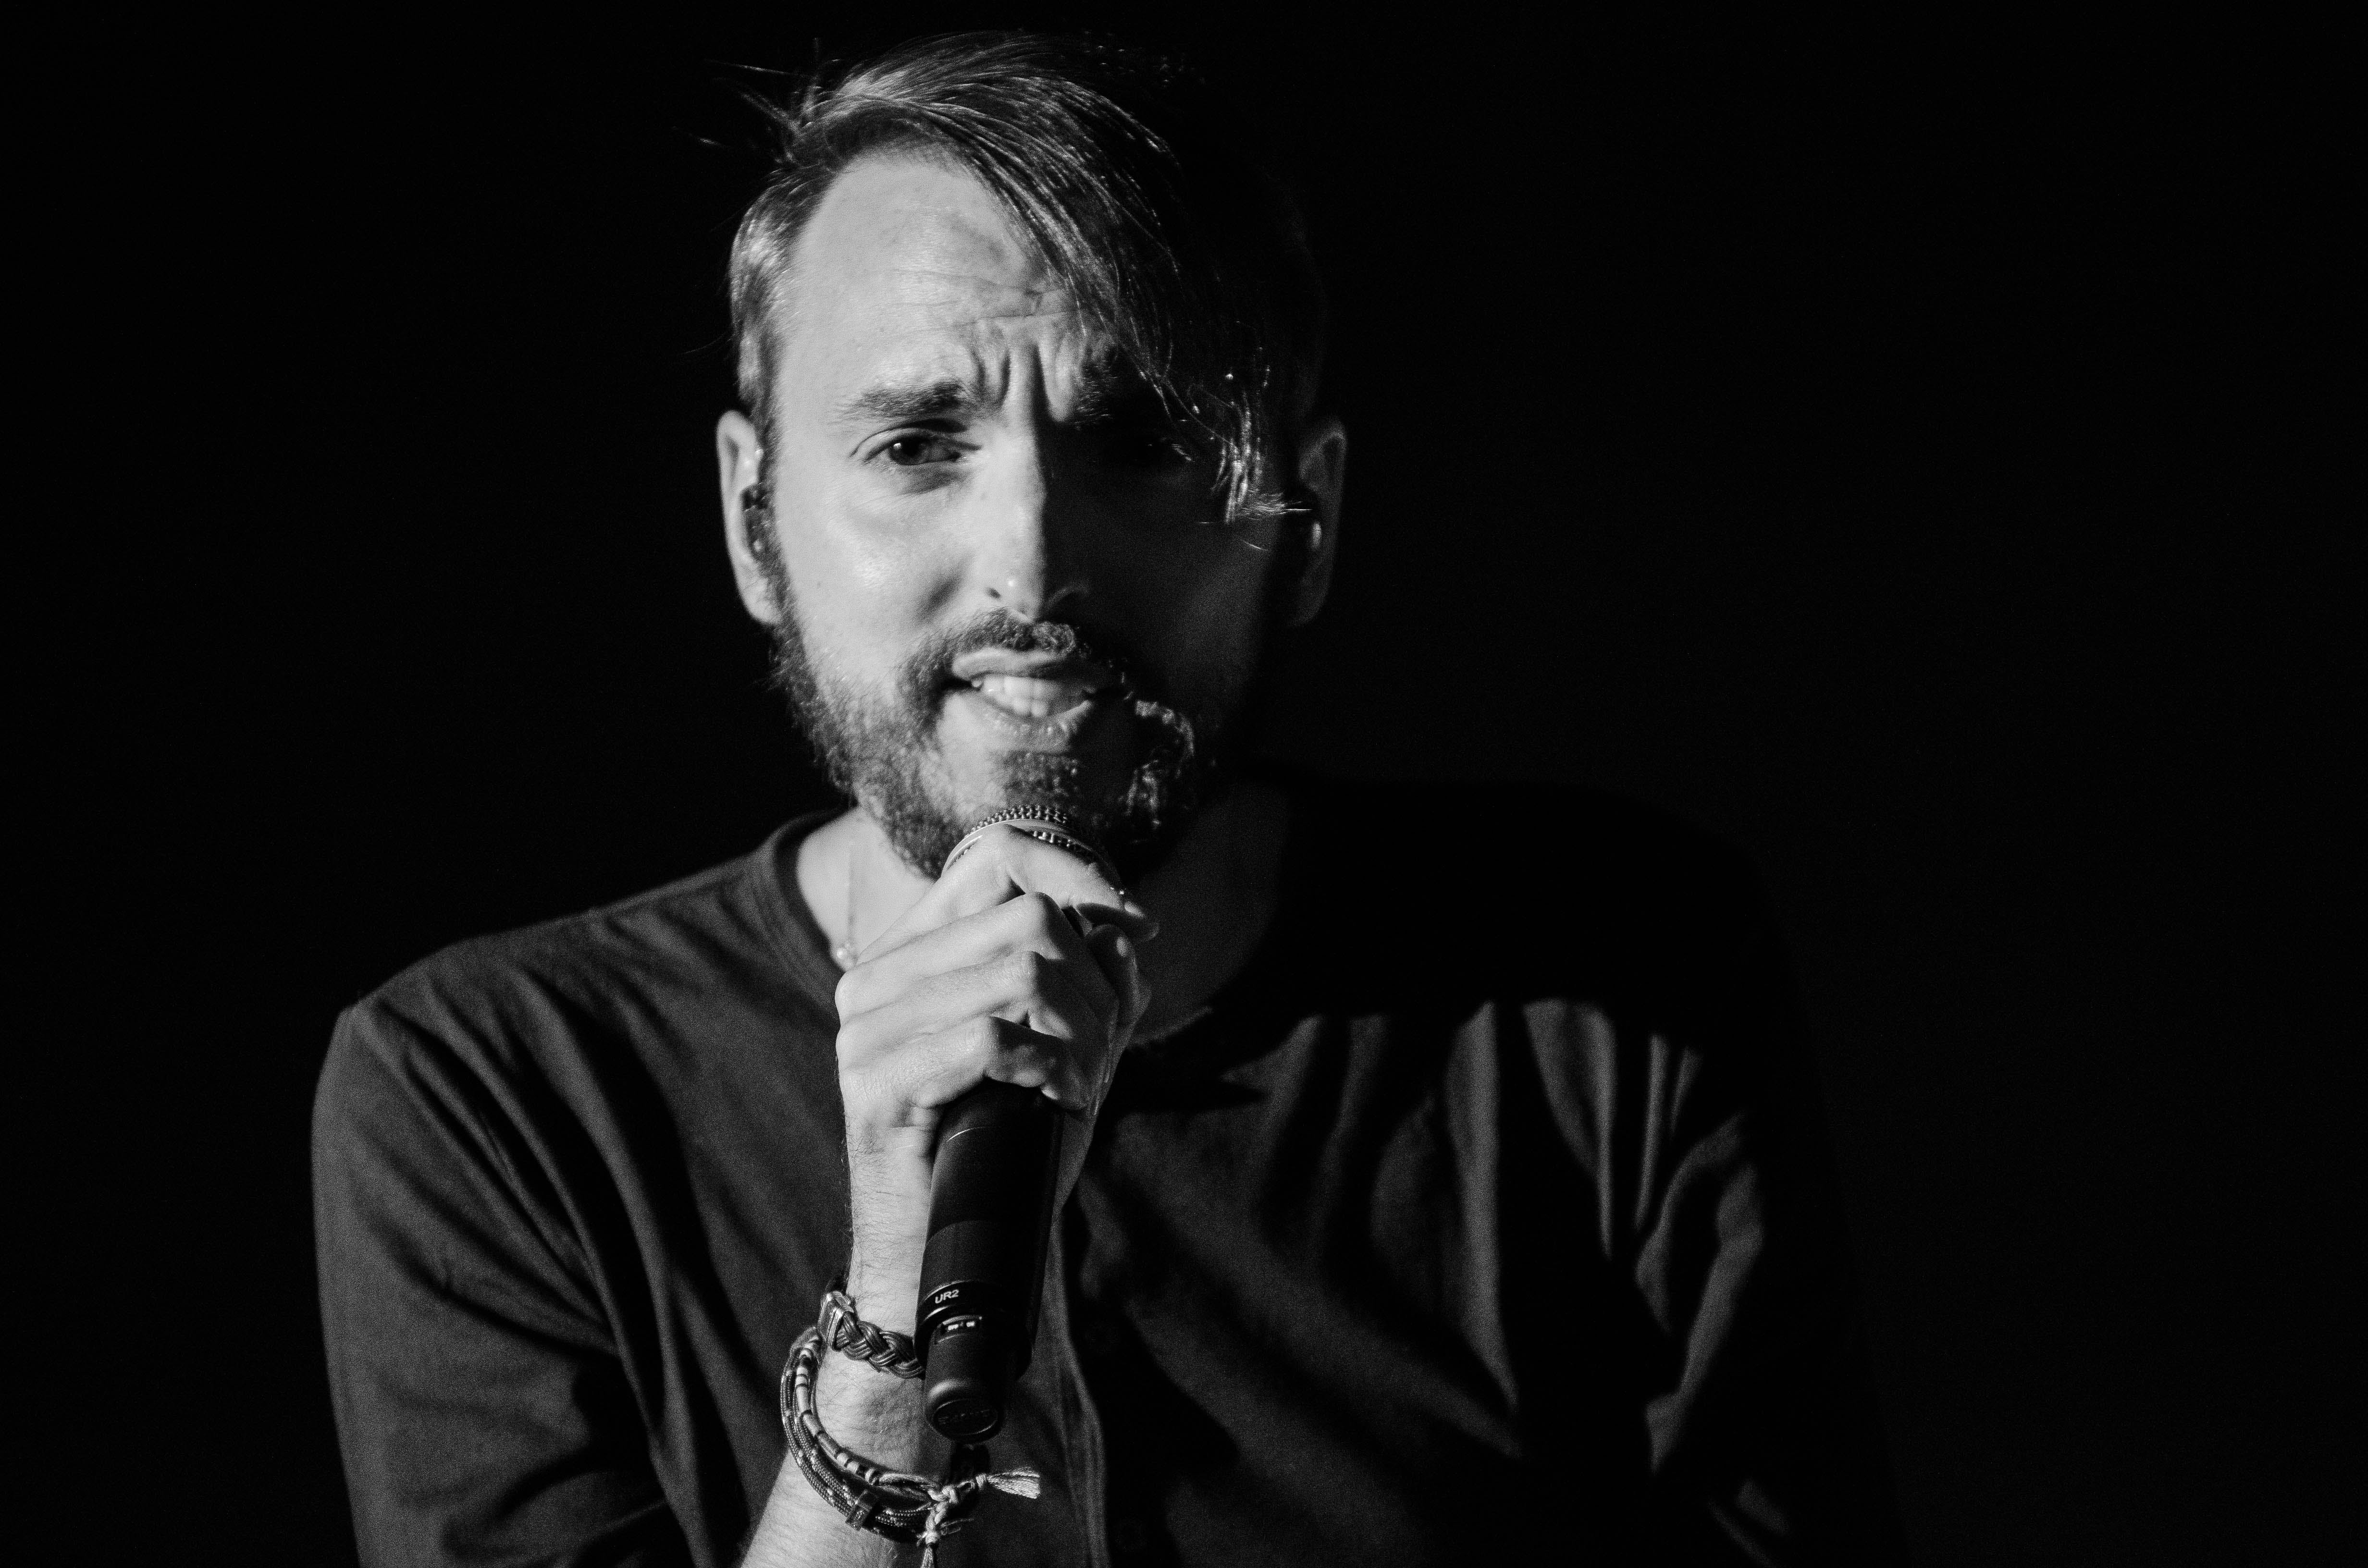 Grayscale Photo of Man Holding Microphone